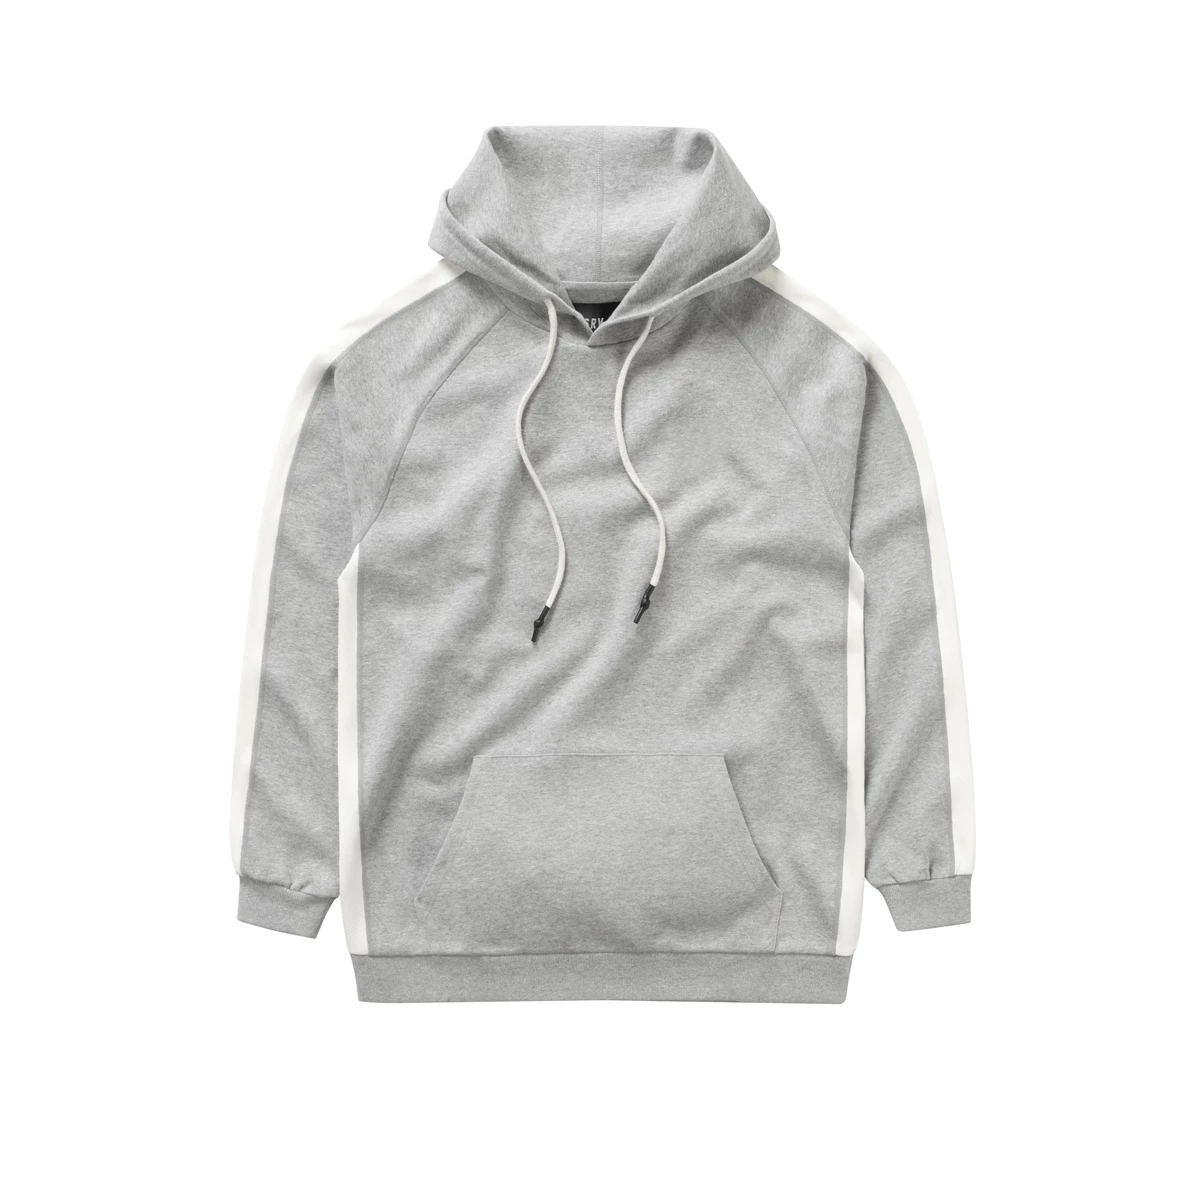 OEM wholesale fashion long sleeve black hoodie white strings pullover hoodie black hoodies men